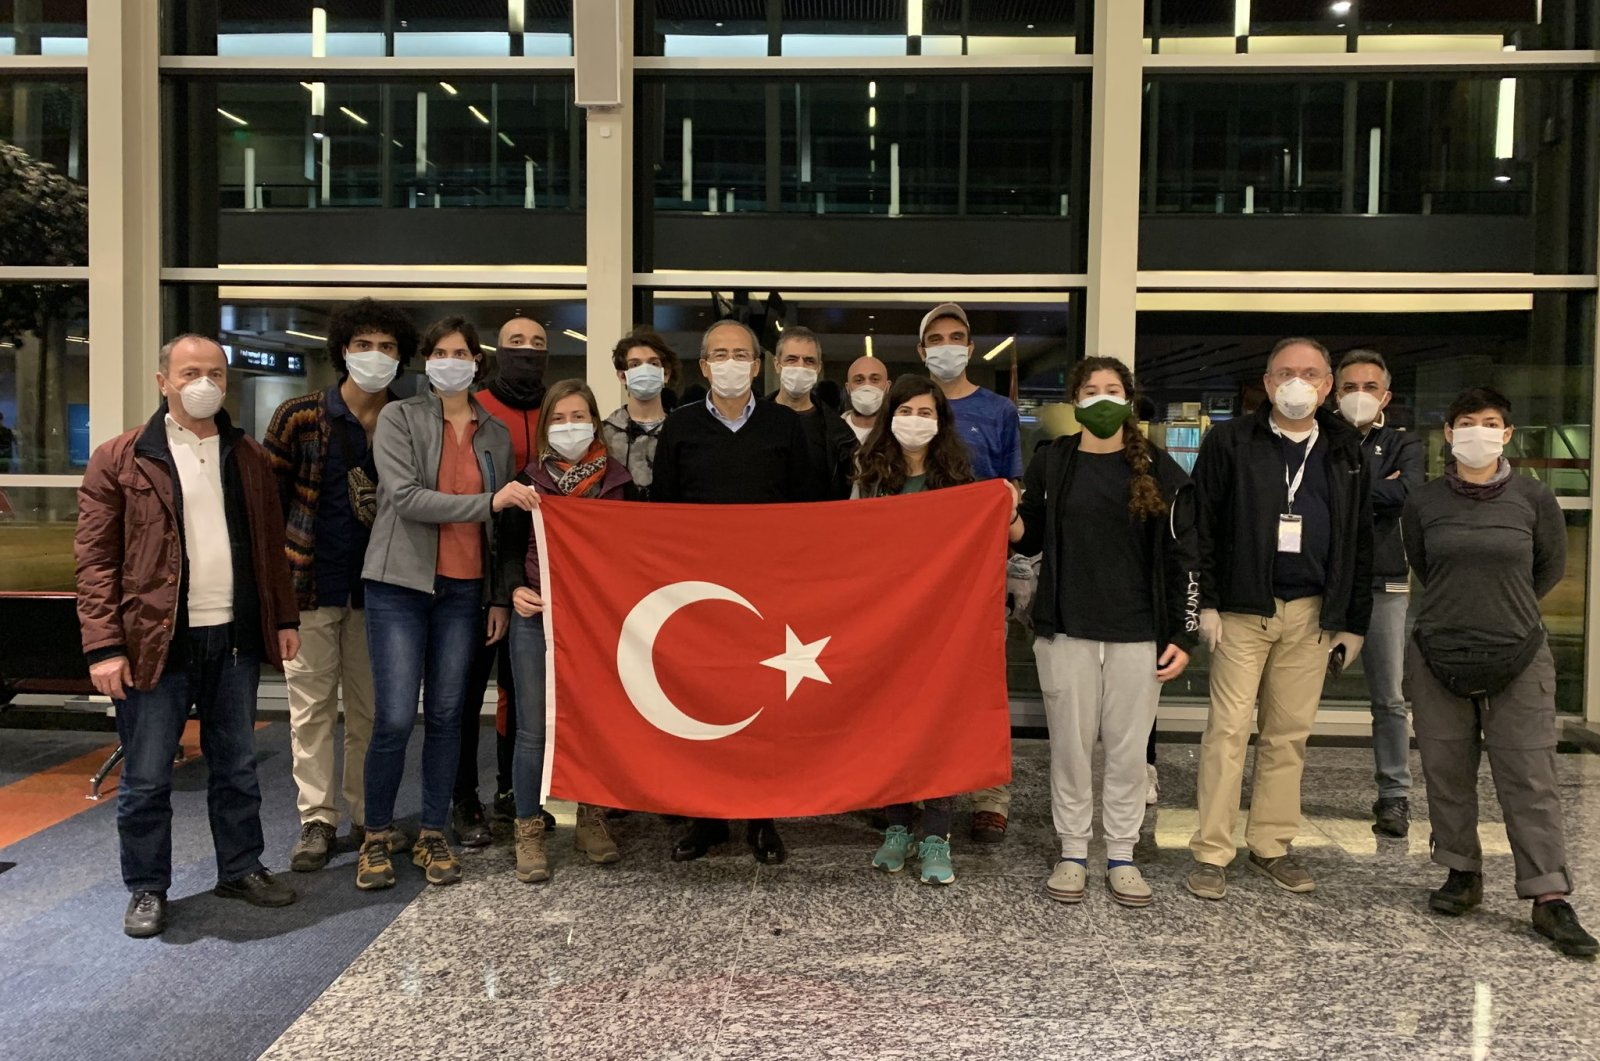 Evacuated Turkish nationals pose with a Turkish flag at an airport in Buenos Aires, Argentina, May 6, 2020. (AA Photo)